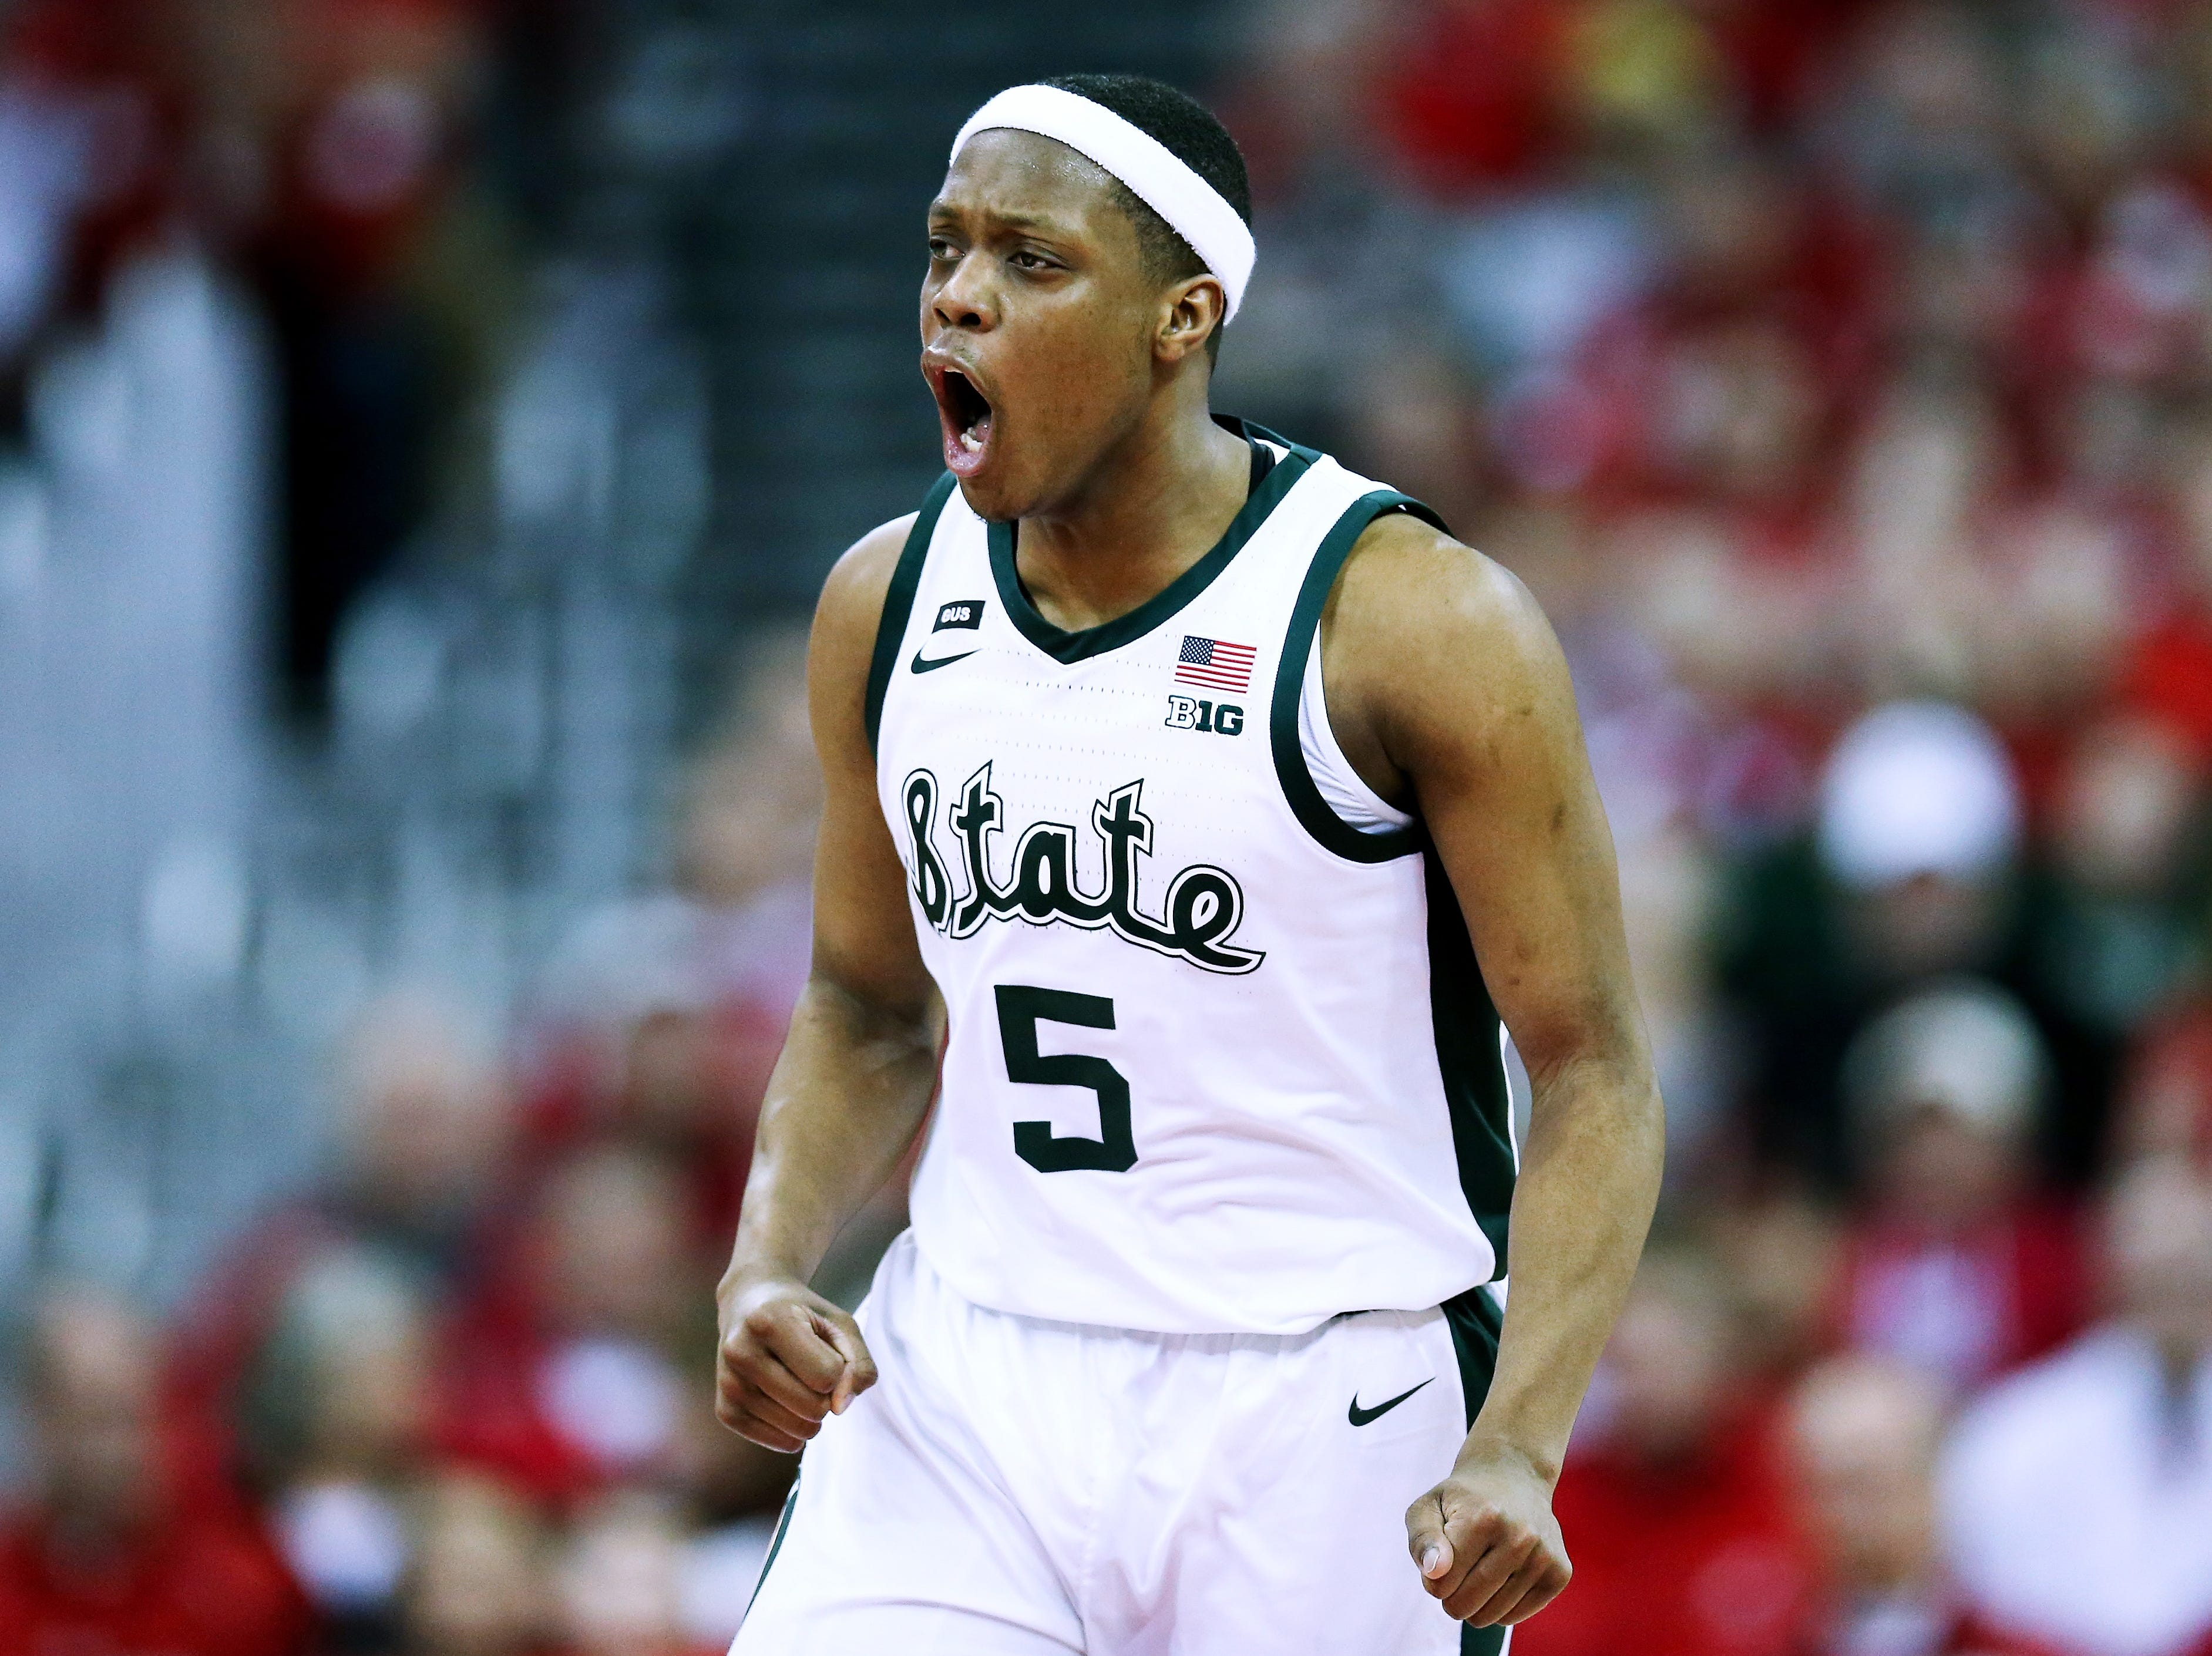 Cassius Winston #5 of the Michigan State Spartans reacts in the first half against the Wisconsin Badgers at the Kohl Center on February 12, 2019 in Madison, Wisconsin.